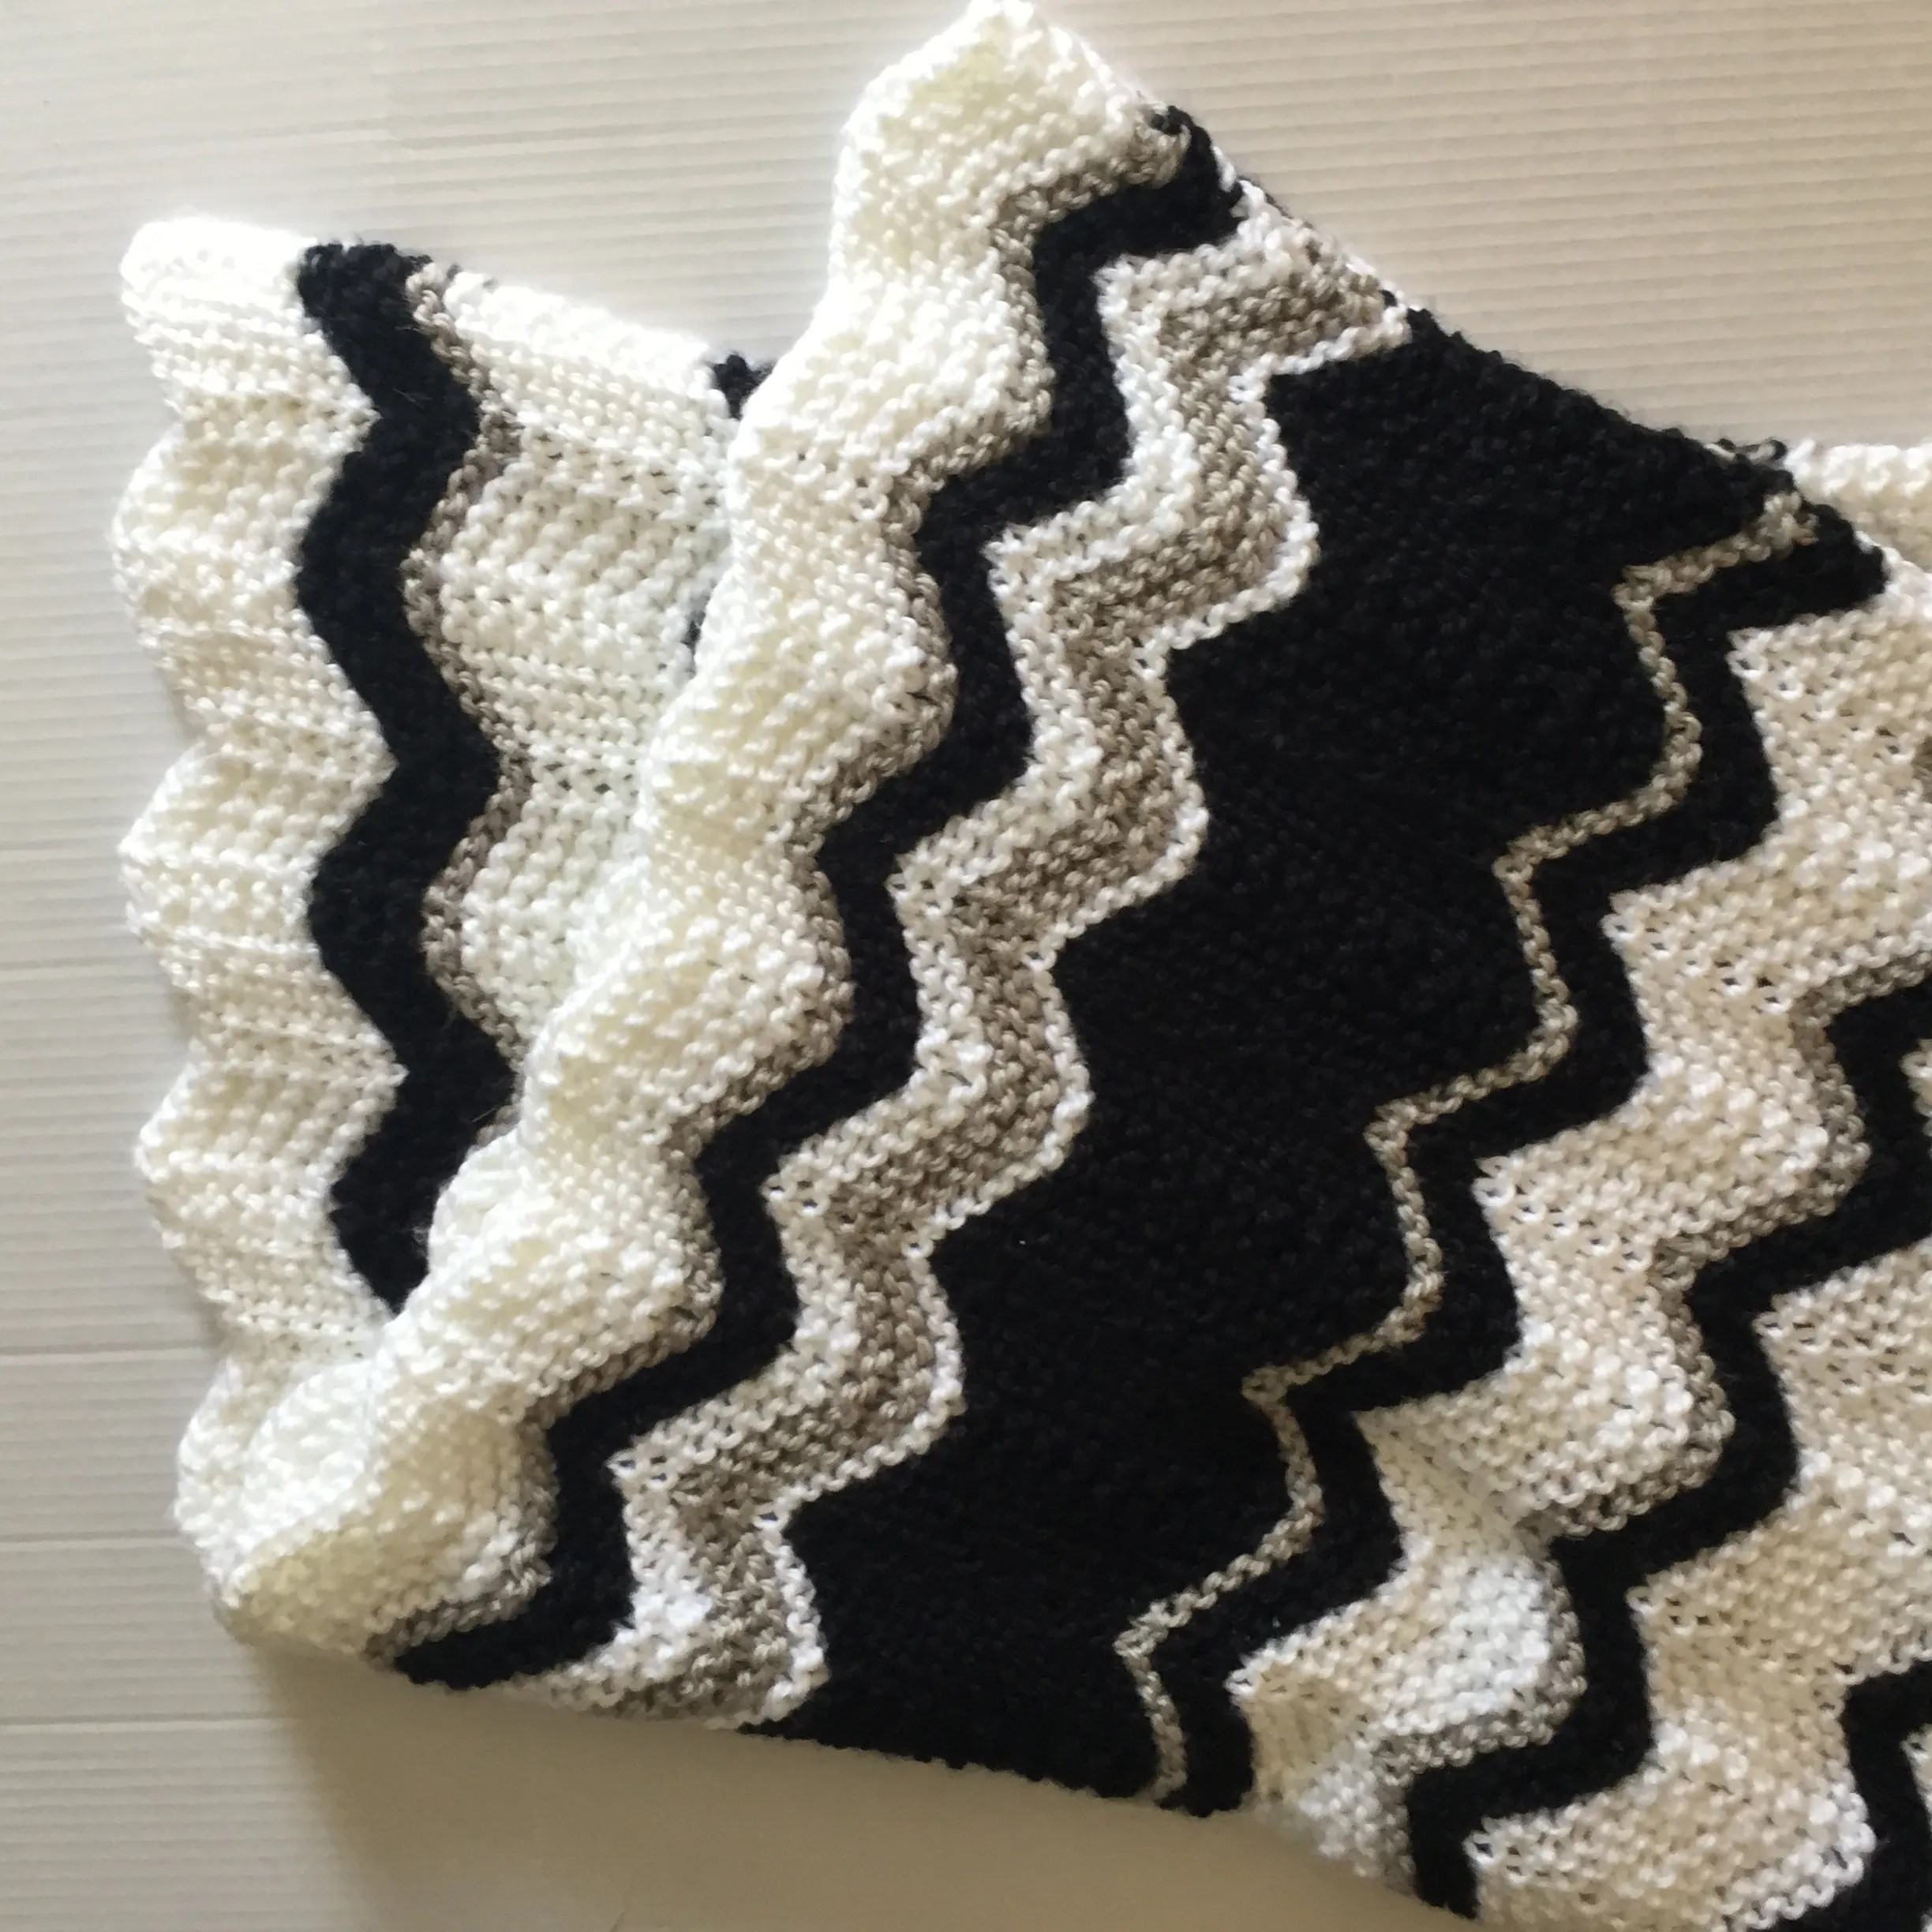 Knits: Black and White Baby Blanket